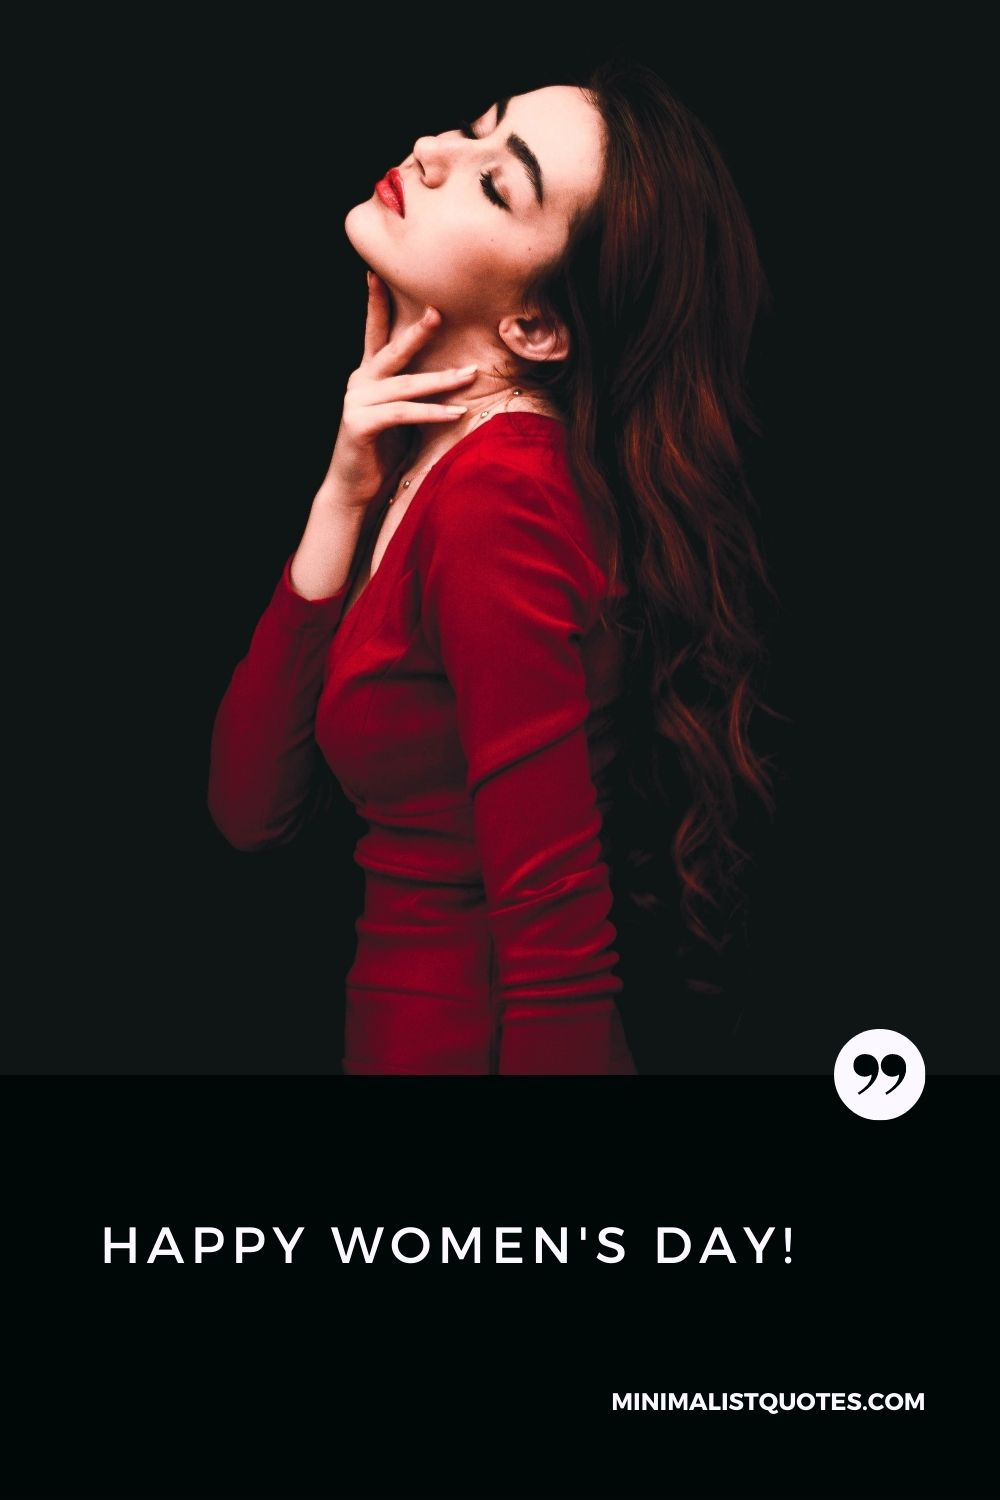 Happy Womens Day! Image & Card: #selflove